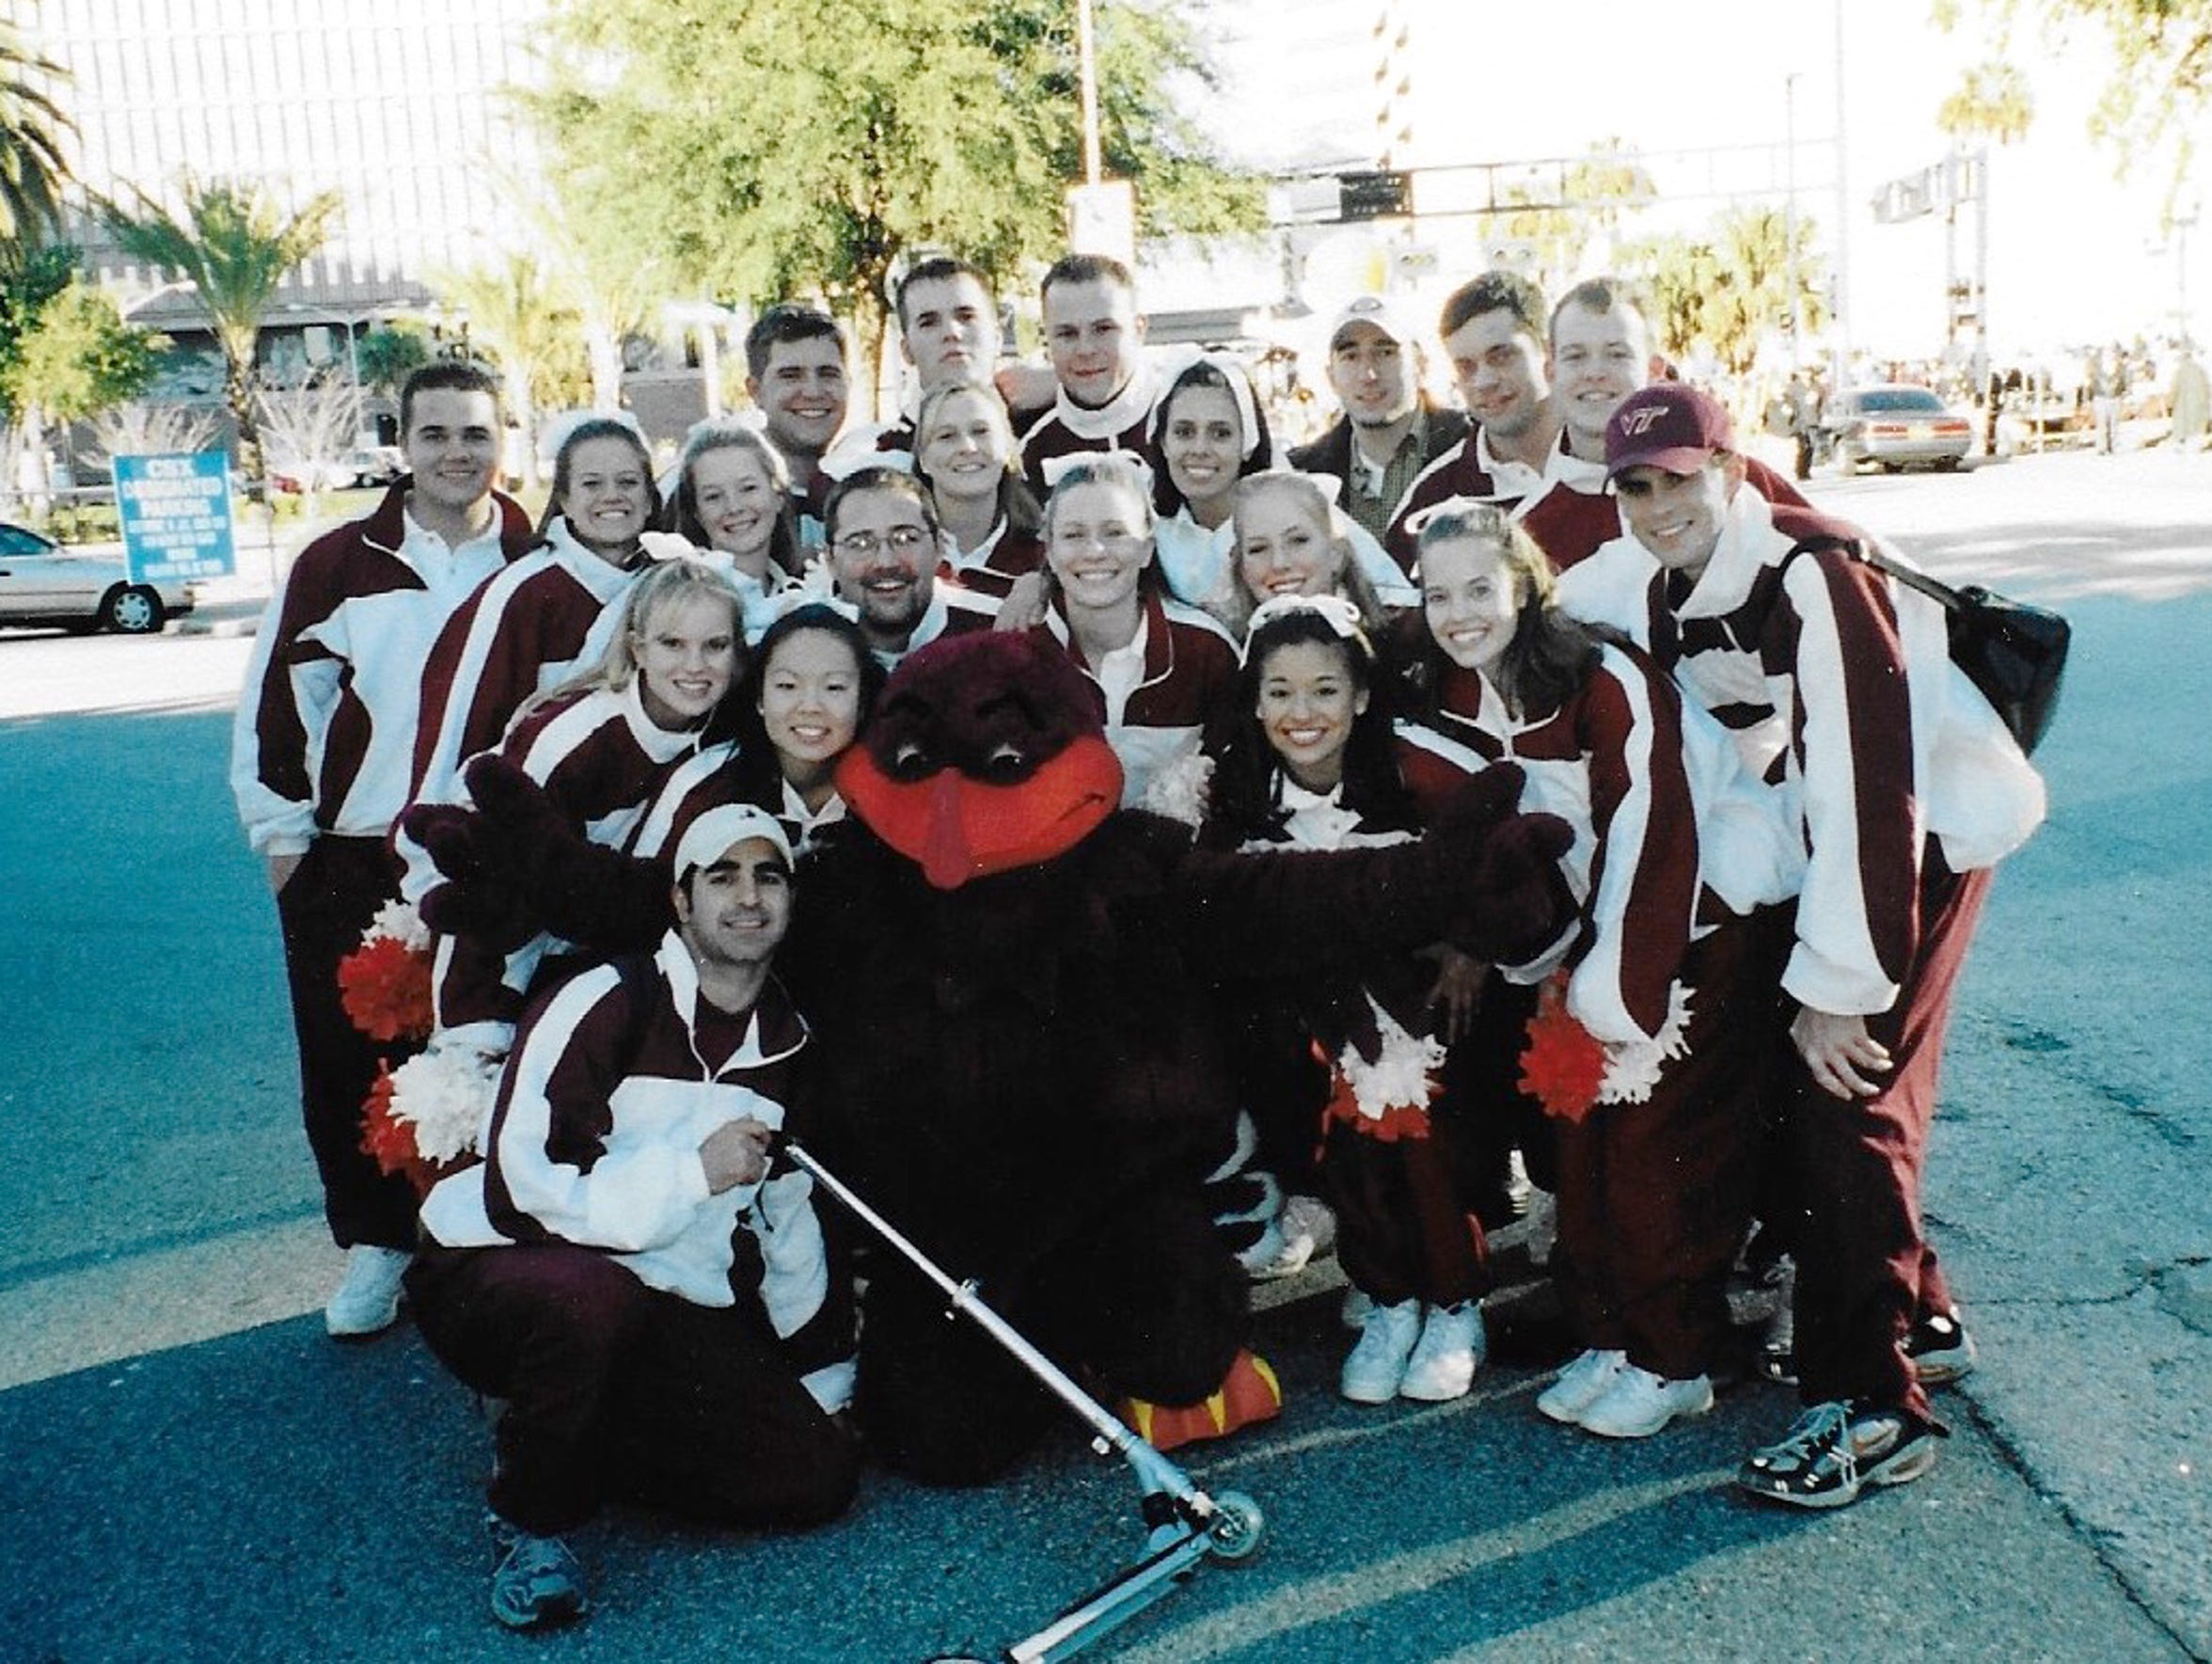 Corey Campbell in the Hokie Bird costume along with